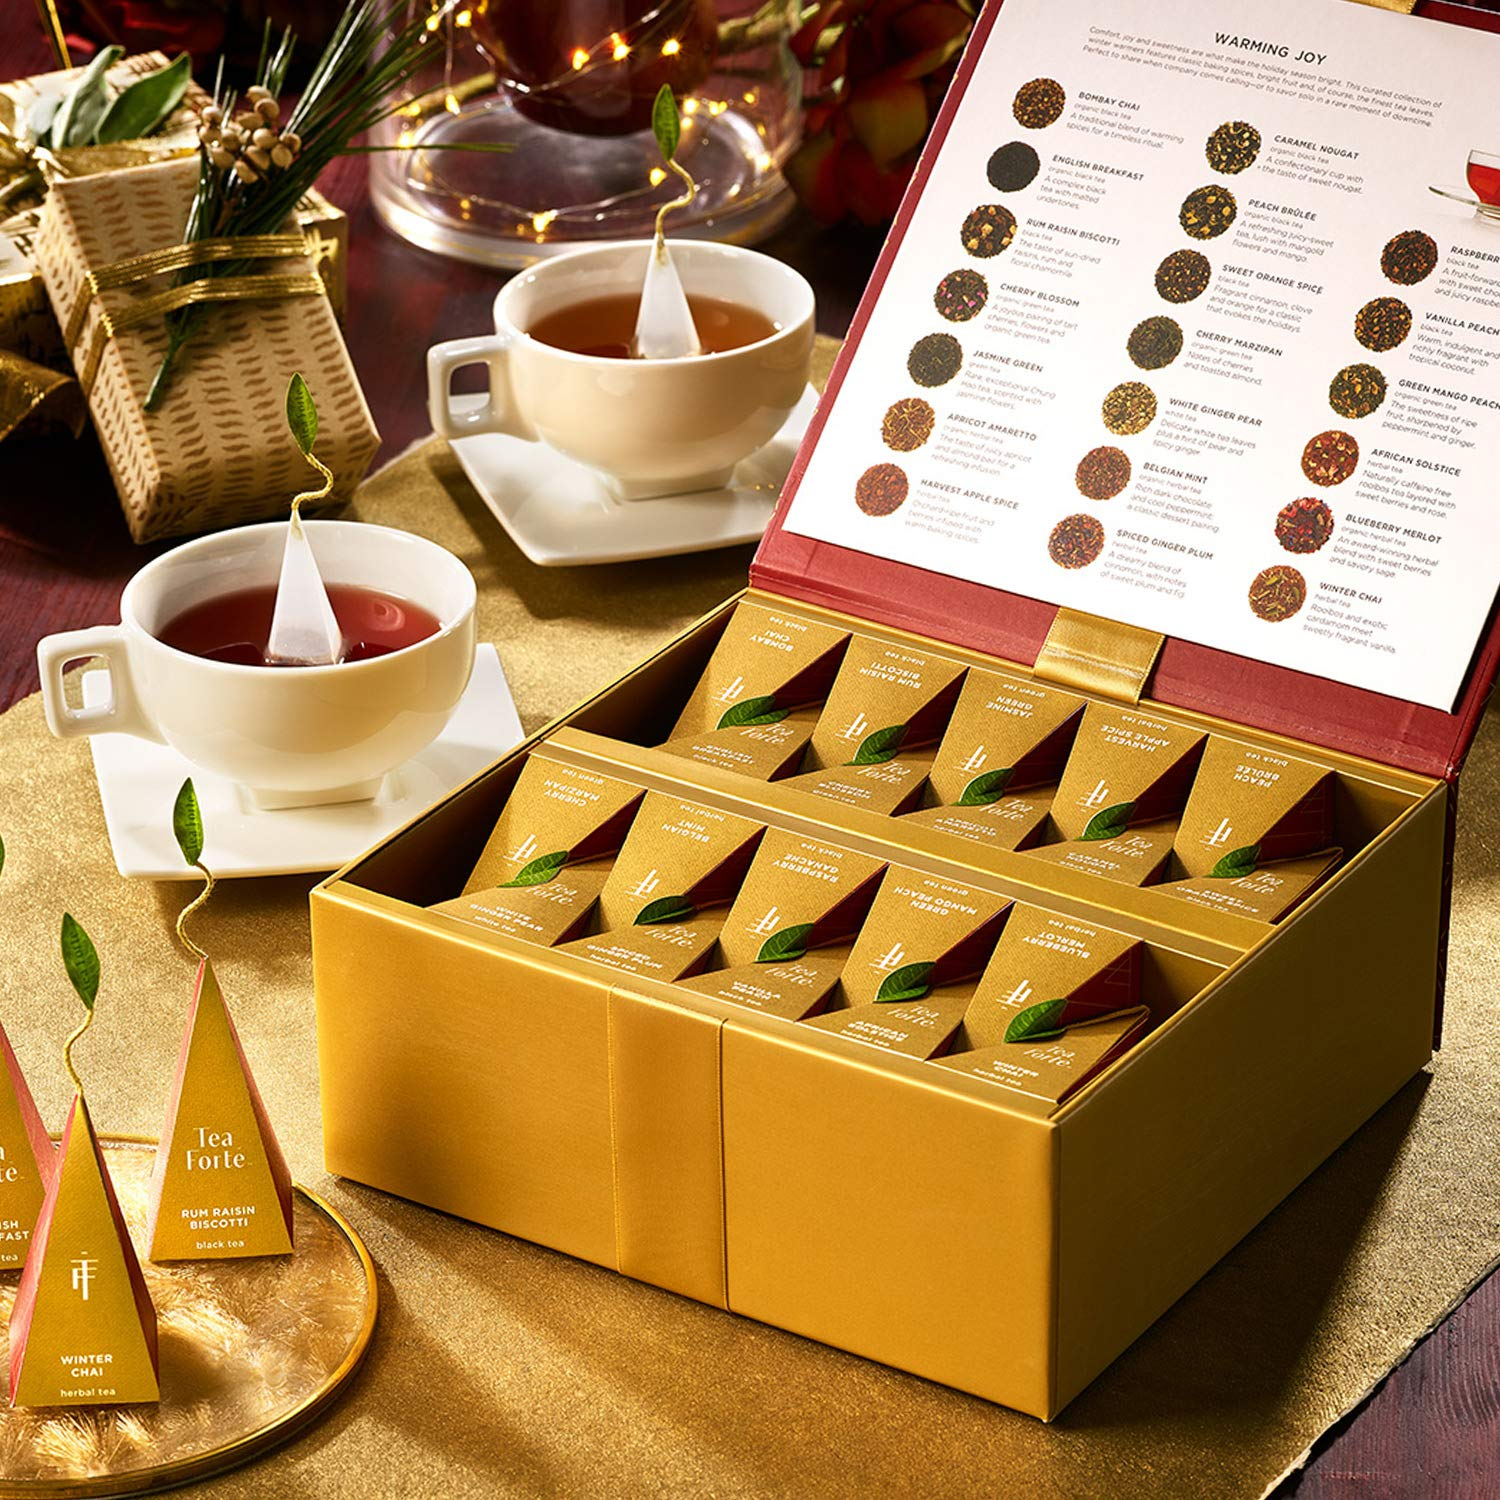 Tea Forte Warming Joy Tea Chest Tasting Assortment Featuring Seasonal and Festive Tea Blends, 40 Handcrafted Pyramid Tea Infusers Red & Gold